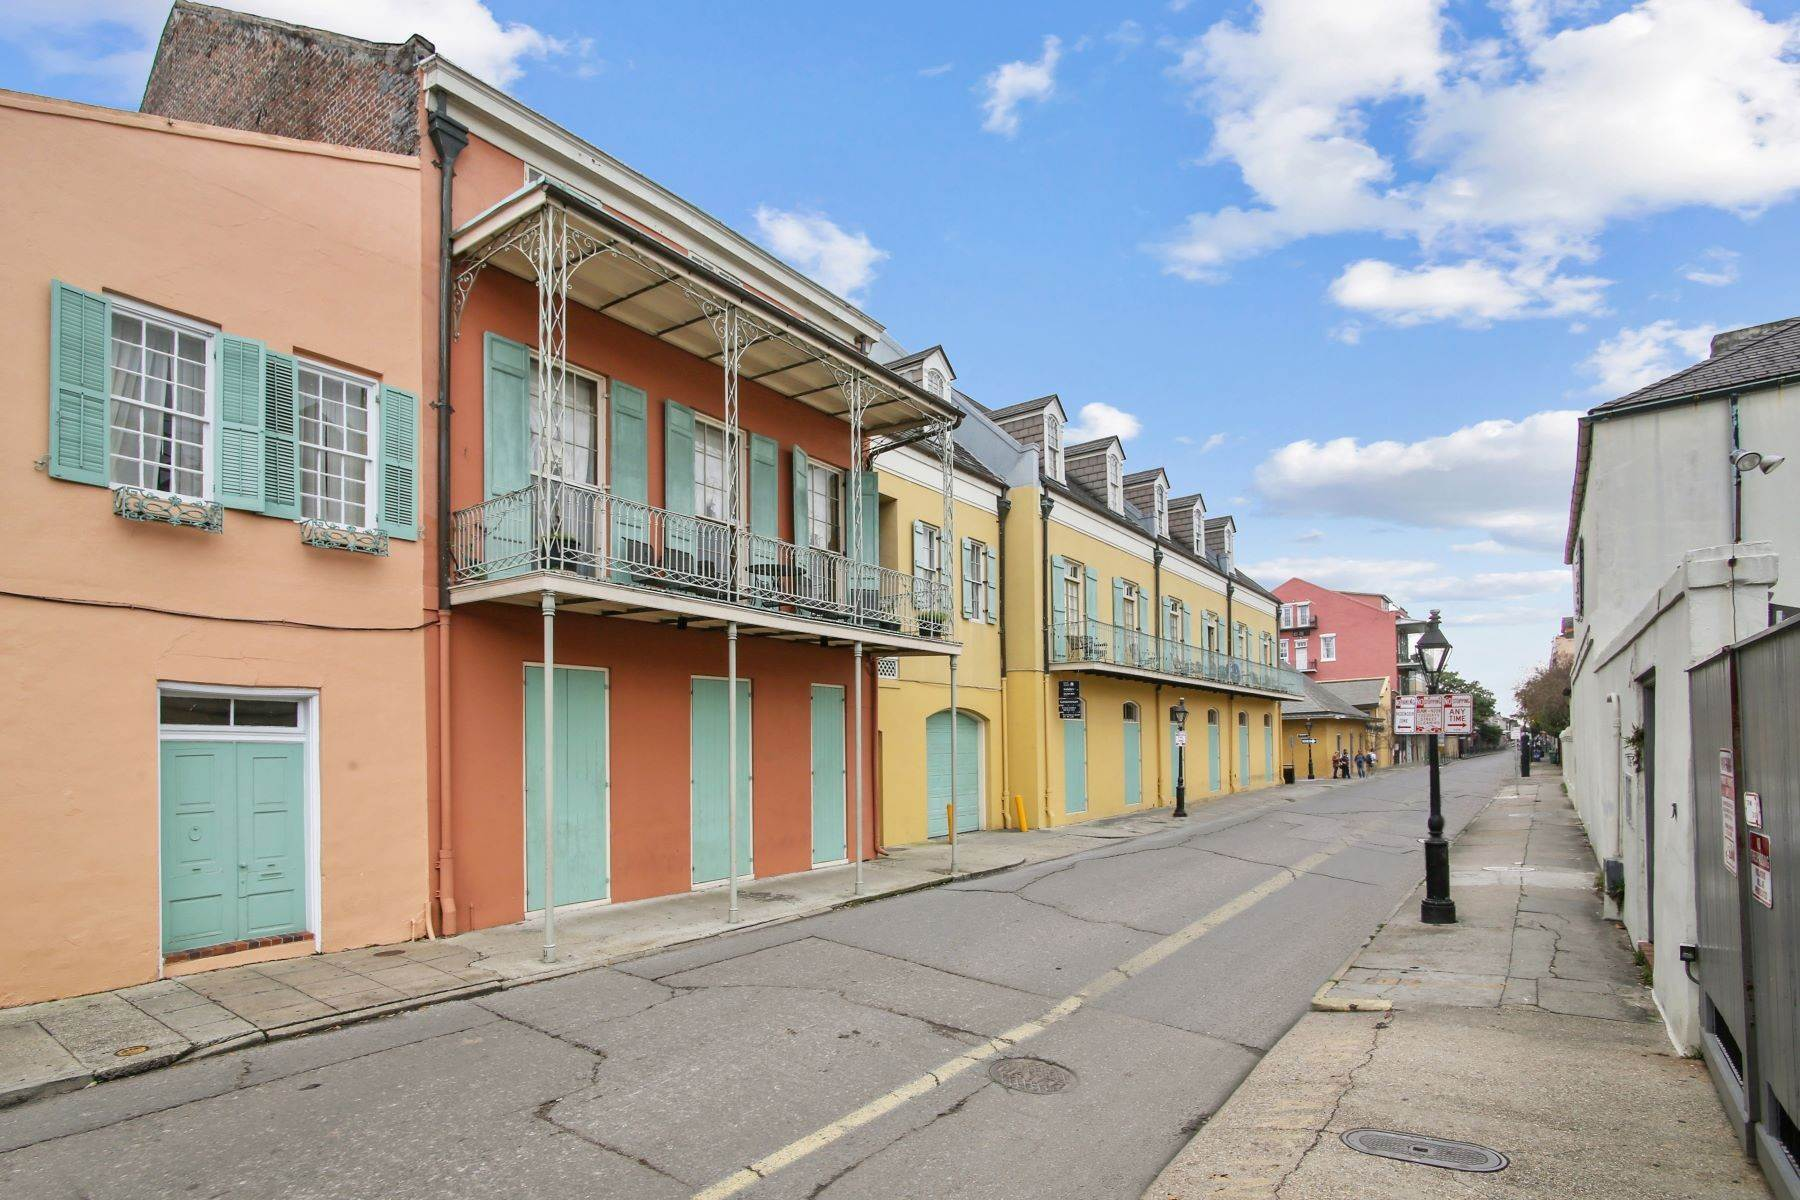 Property for Sale at 1040 Chartres Street, C6 1040 Chartres St, C6 New Orleans, Louisiana 70116 United States